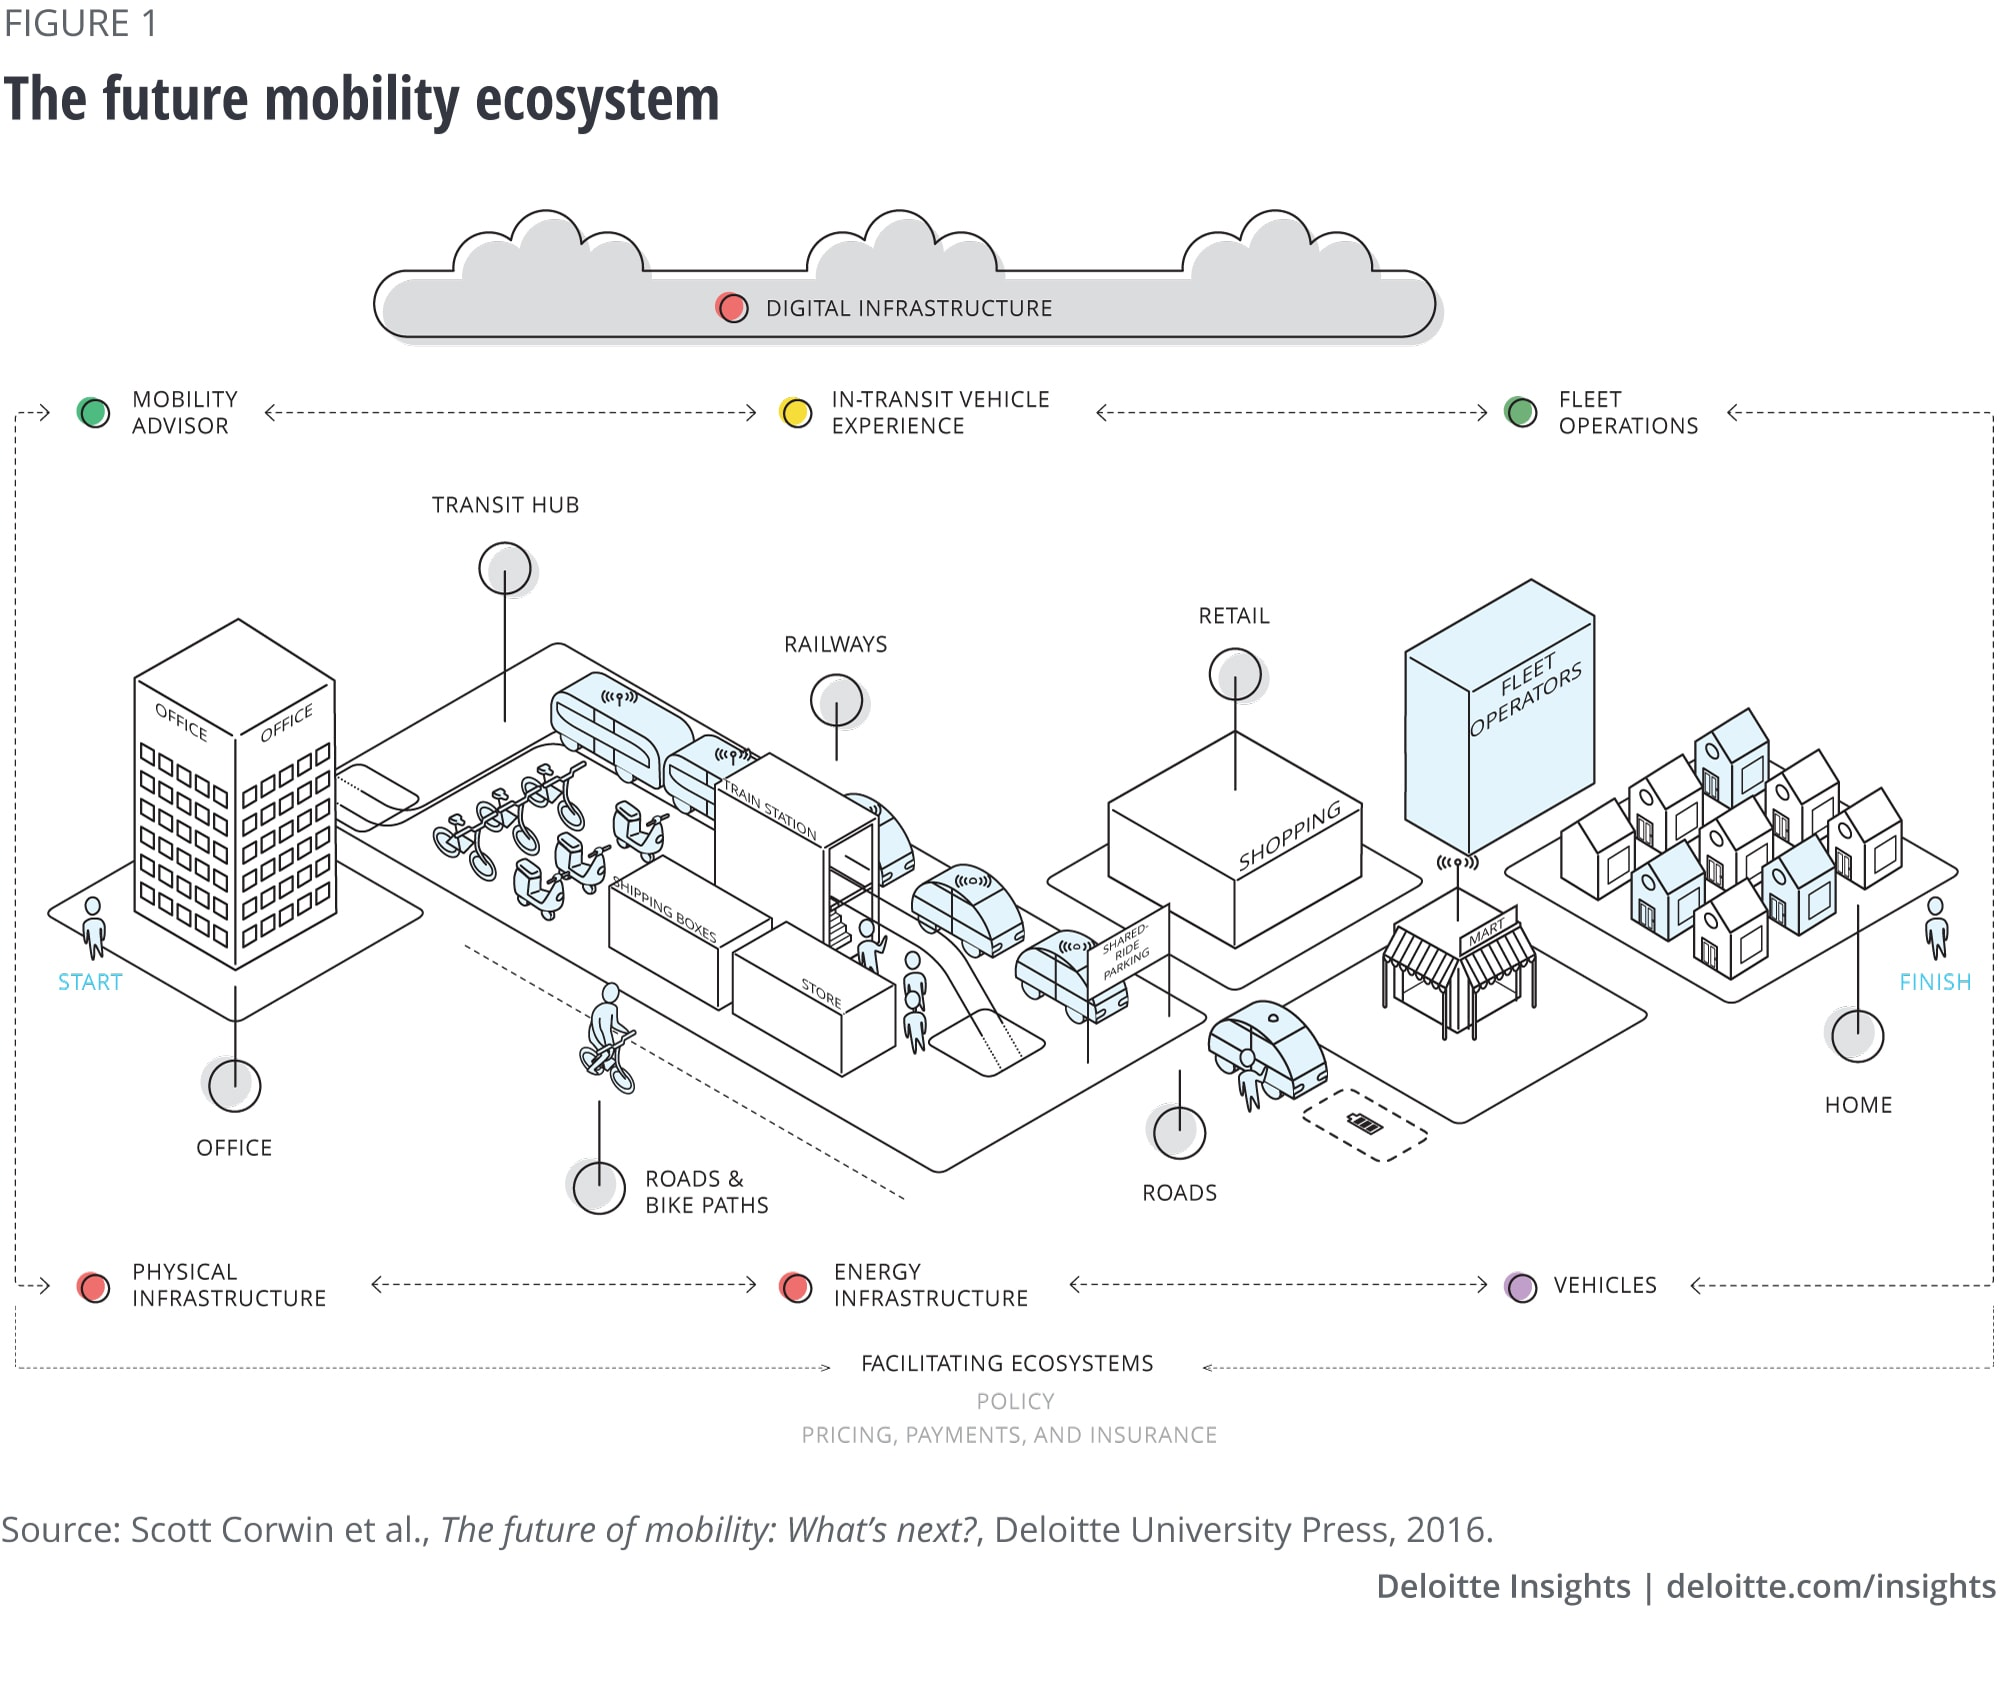 Figure 1. The future mobility ecosystem